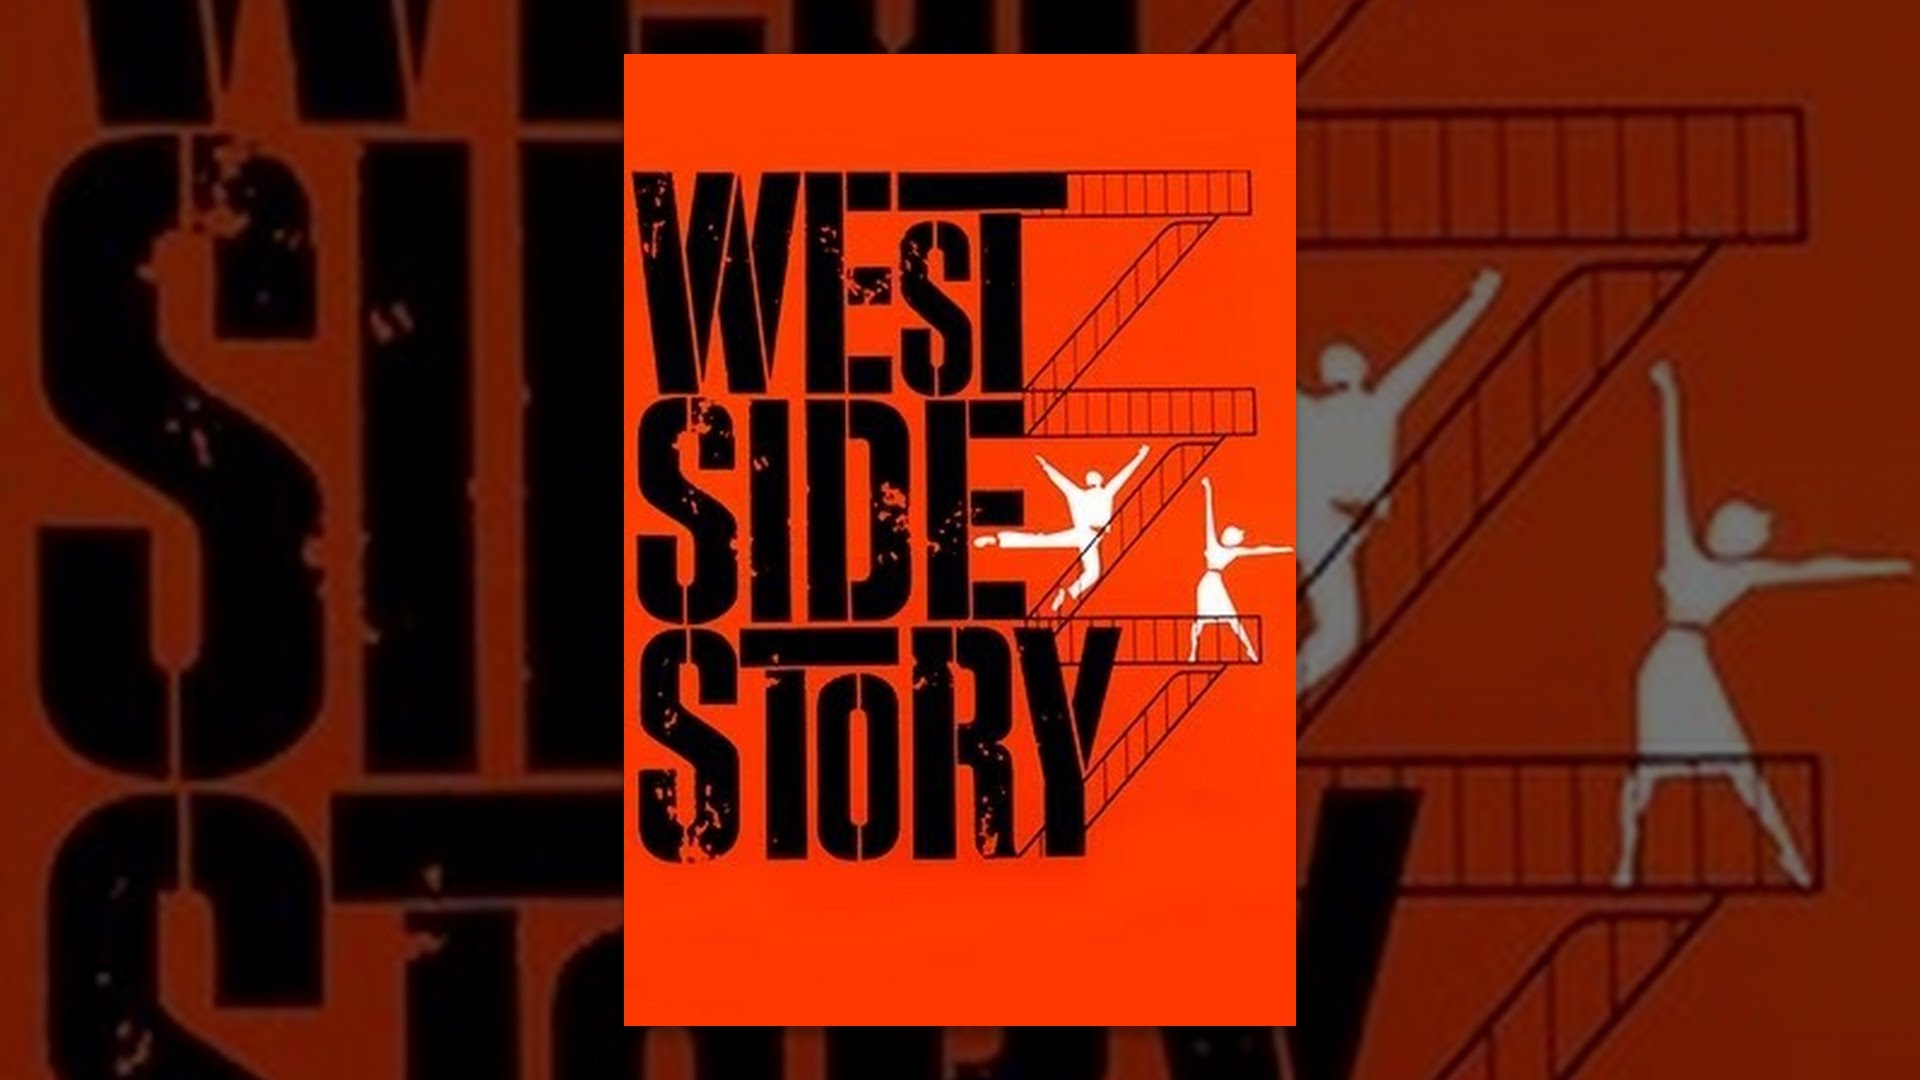 a review of the west side story played in the papermill theater